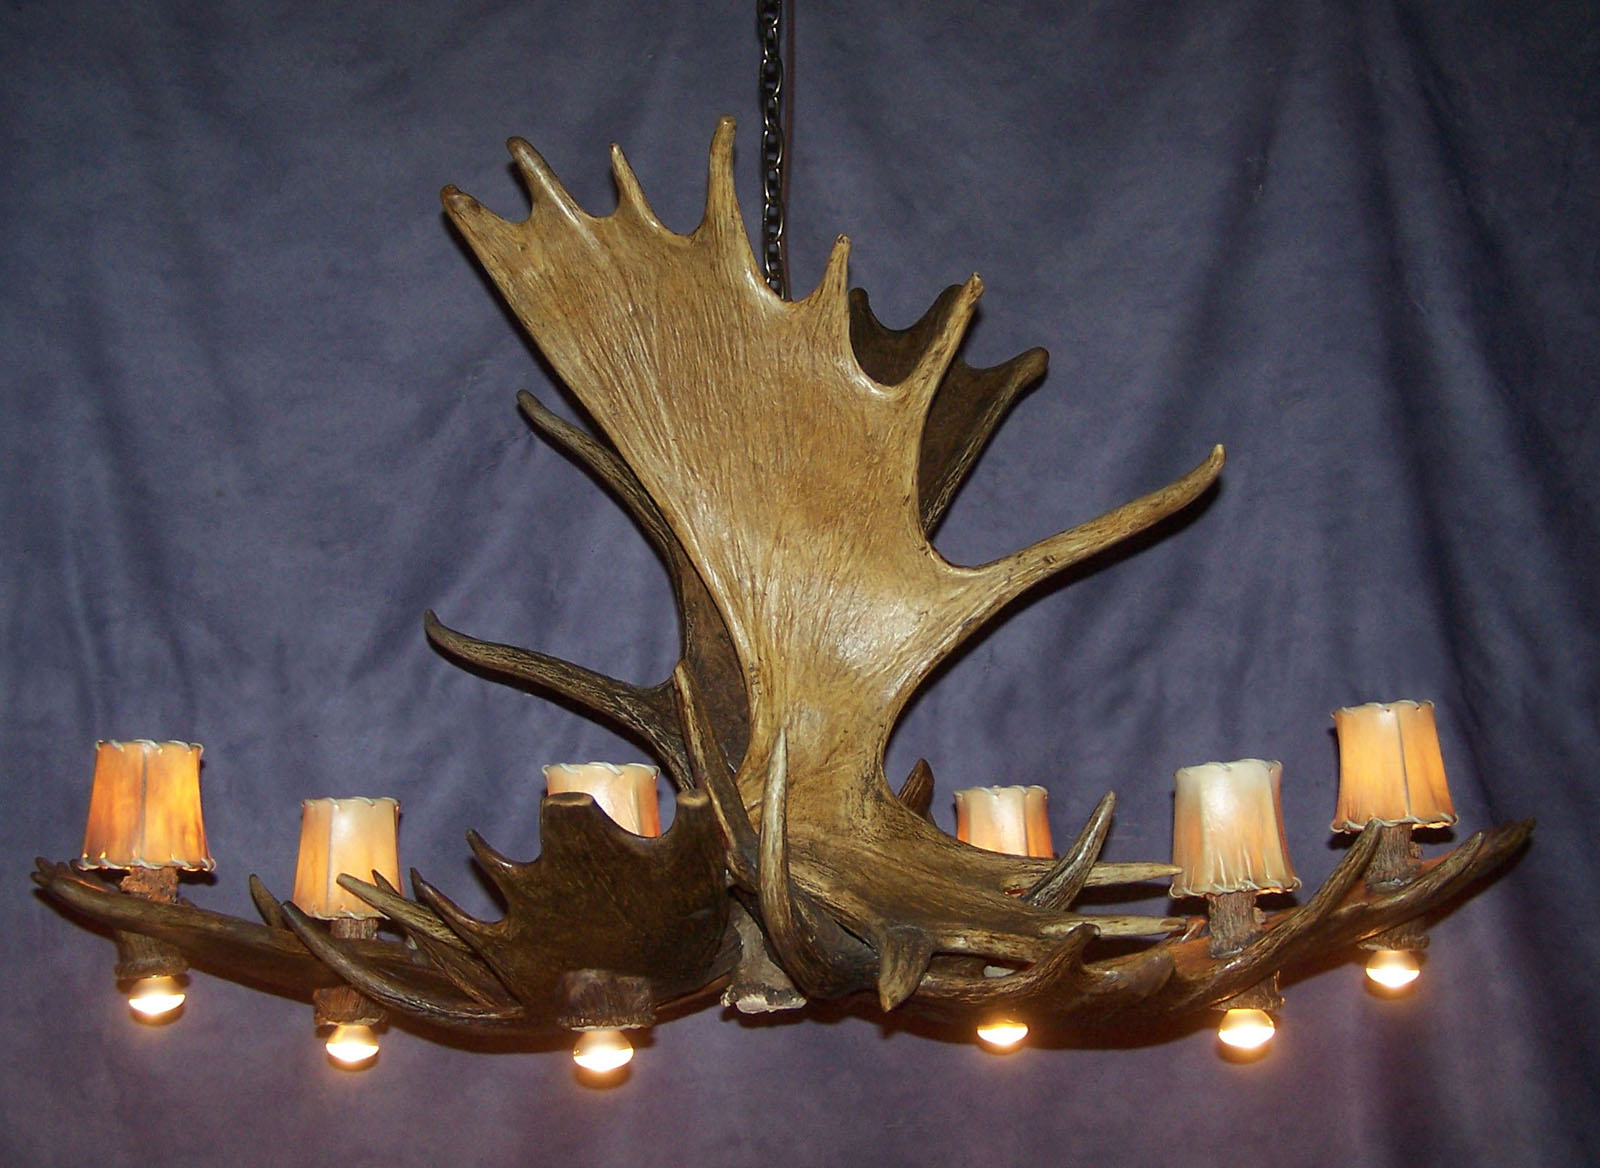 Rustic chandeliers lodge amp cabin lighting - Does Not Apply